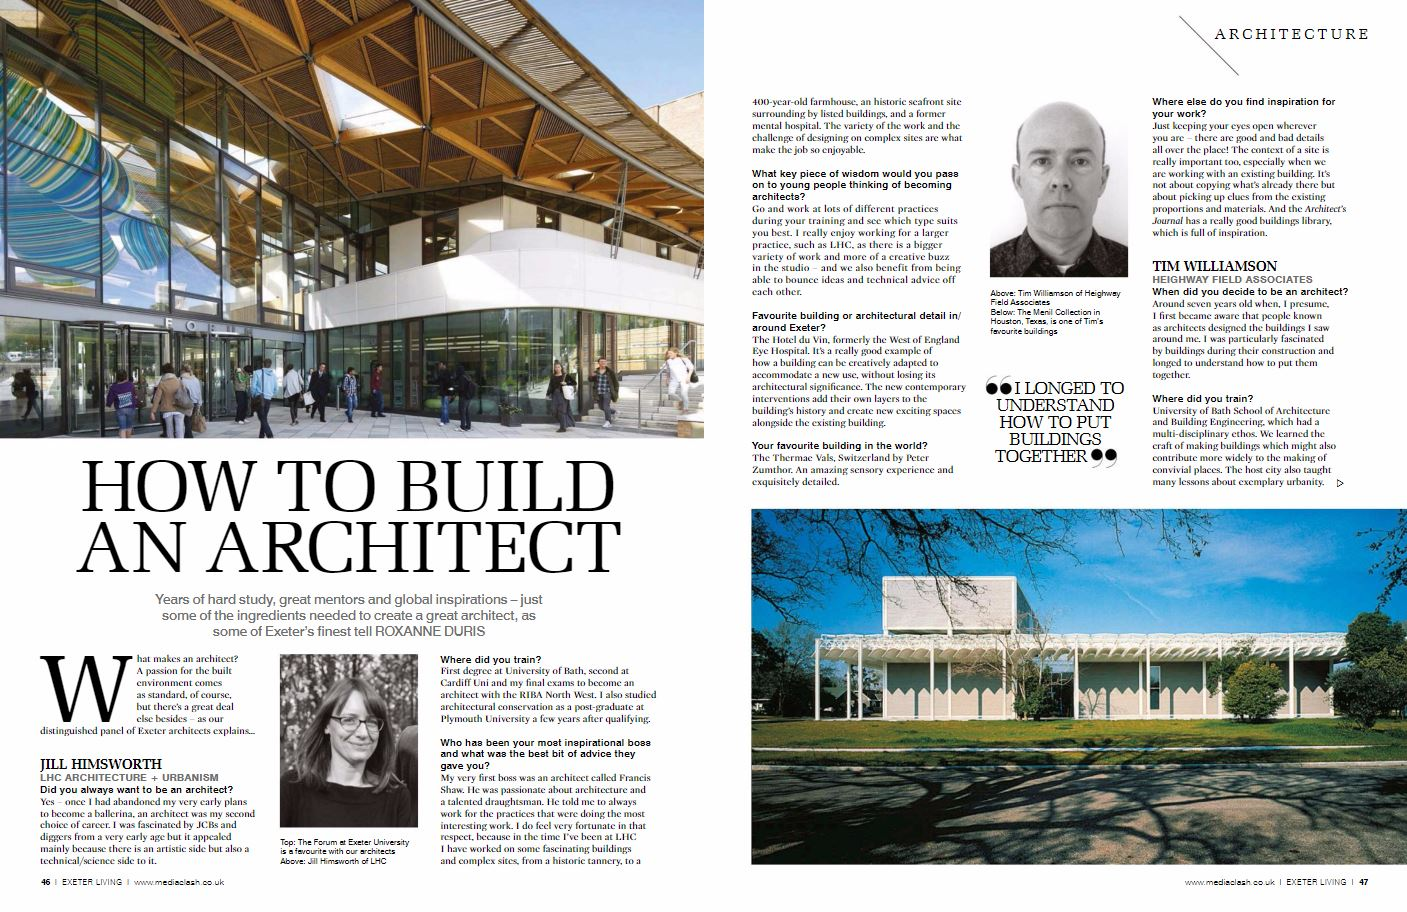 Have You Seen The How To Build An Architect Article?